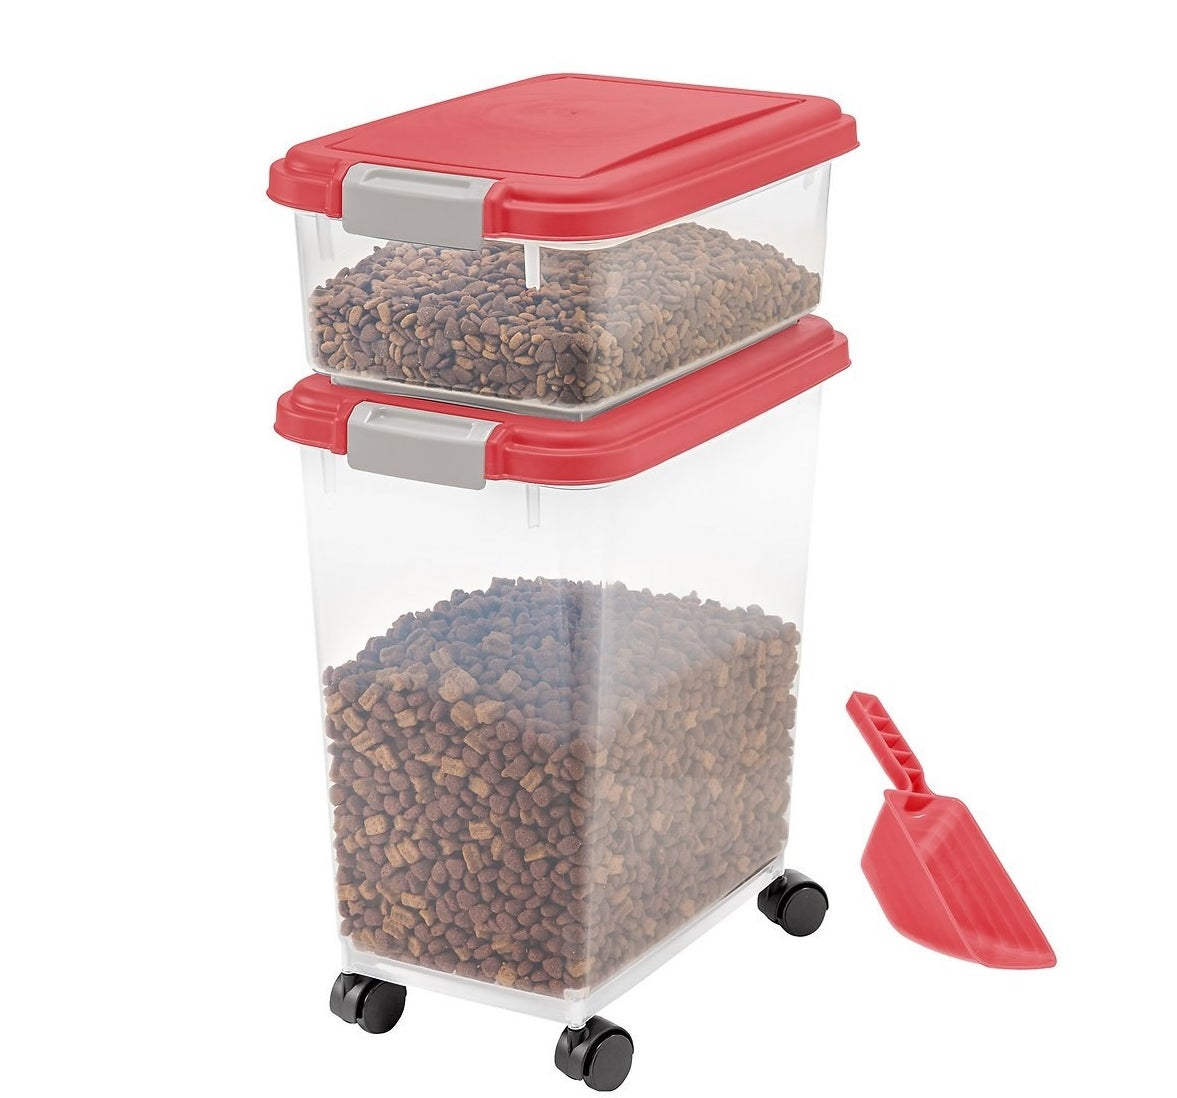 The garnet red/grey red food storage container and scoop combo